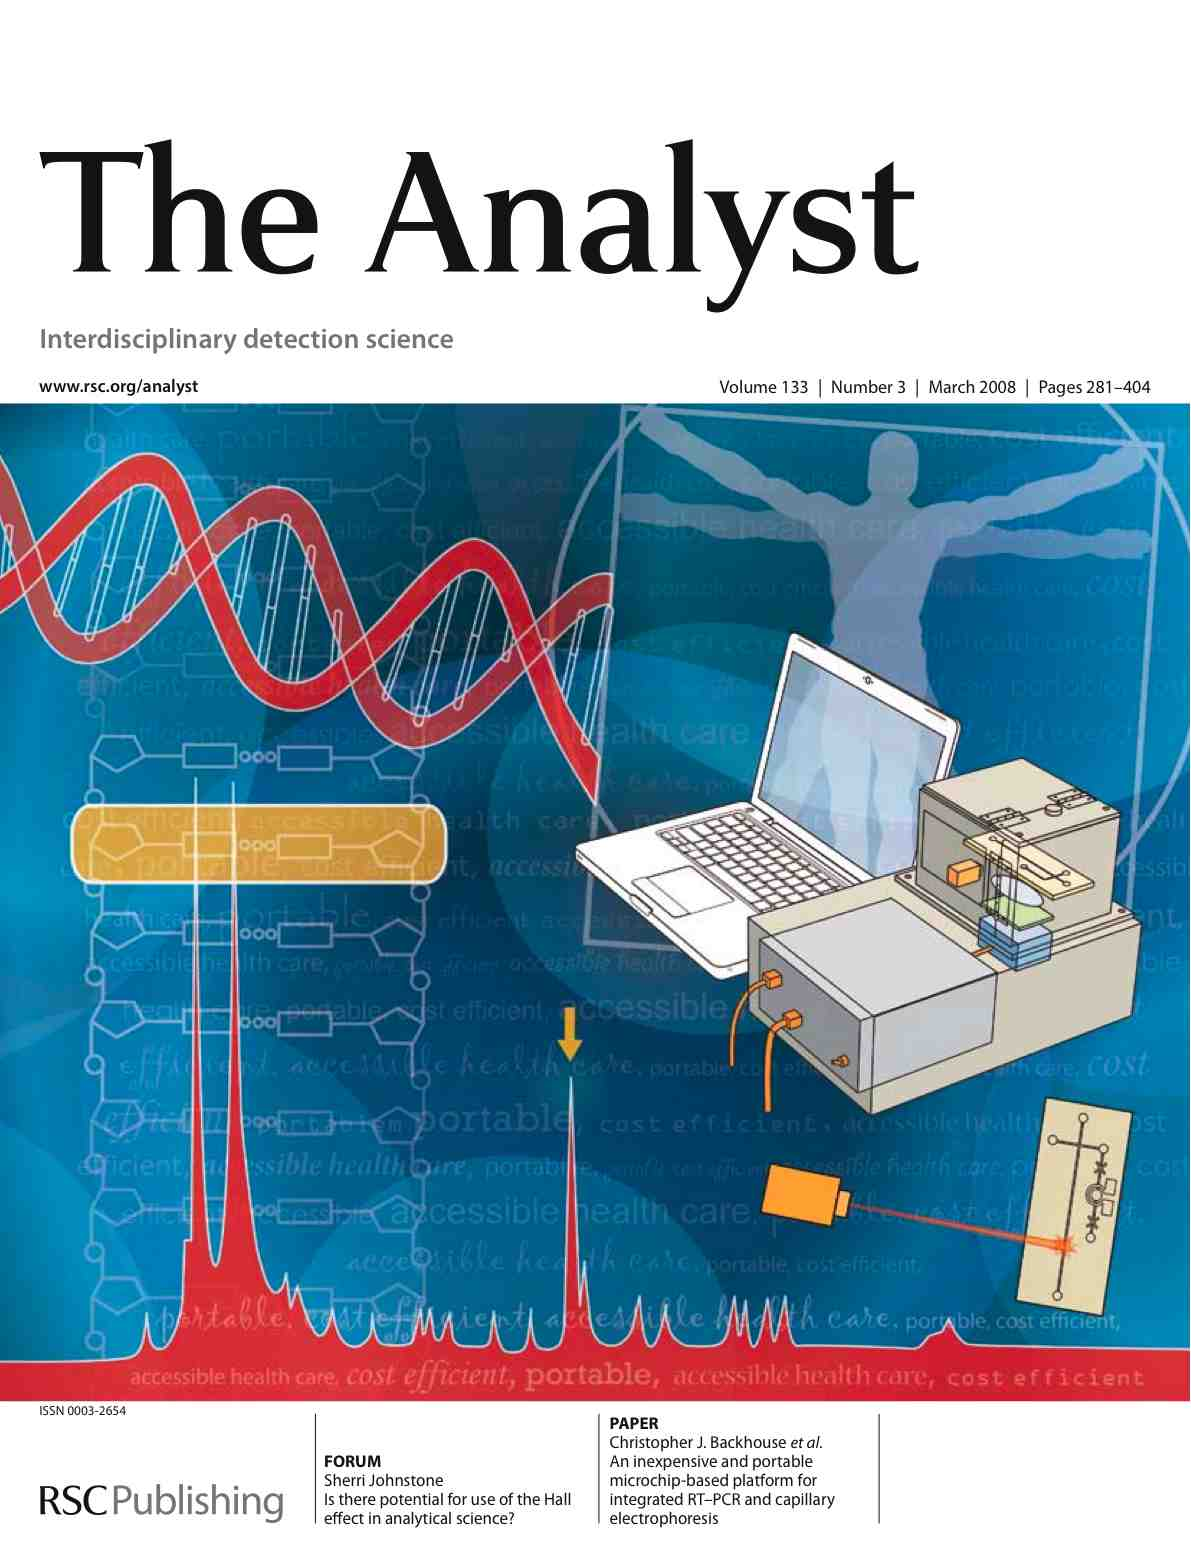 haemochromatosis detection Routine transferrin saturation measurement in liver clinic patients increases detection of hereditary haemochromatosis apoullis1,sjmoodie1,lang1, cj finlayson2,gelevin3and jd maxwell1 addresses 1department of gastroenterology 2department of cellular pathology 3department of chemical pathology st george's hospital and medical school.